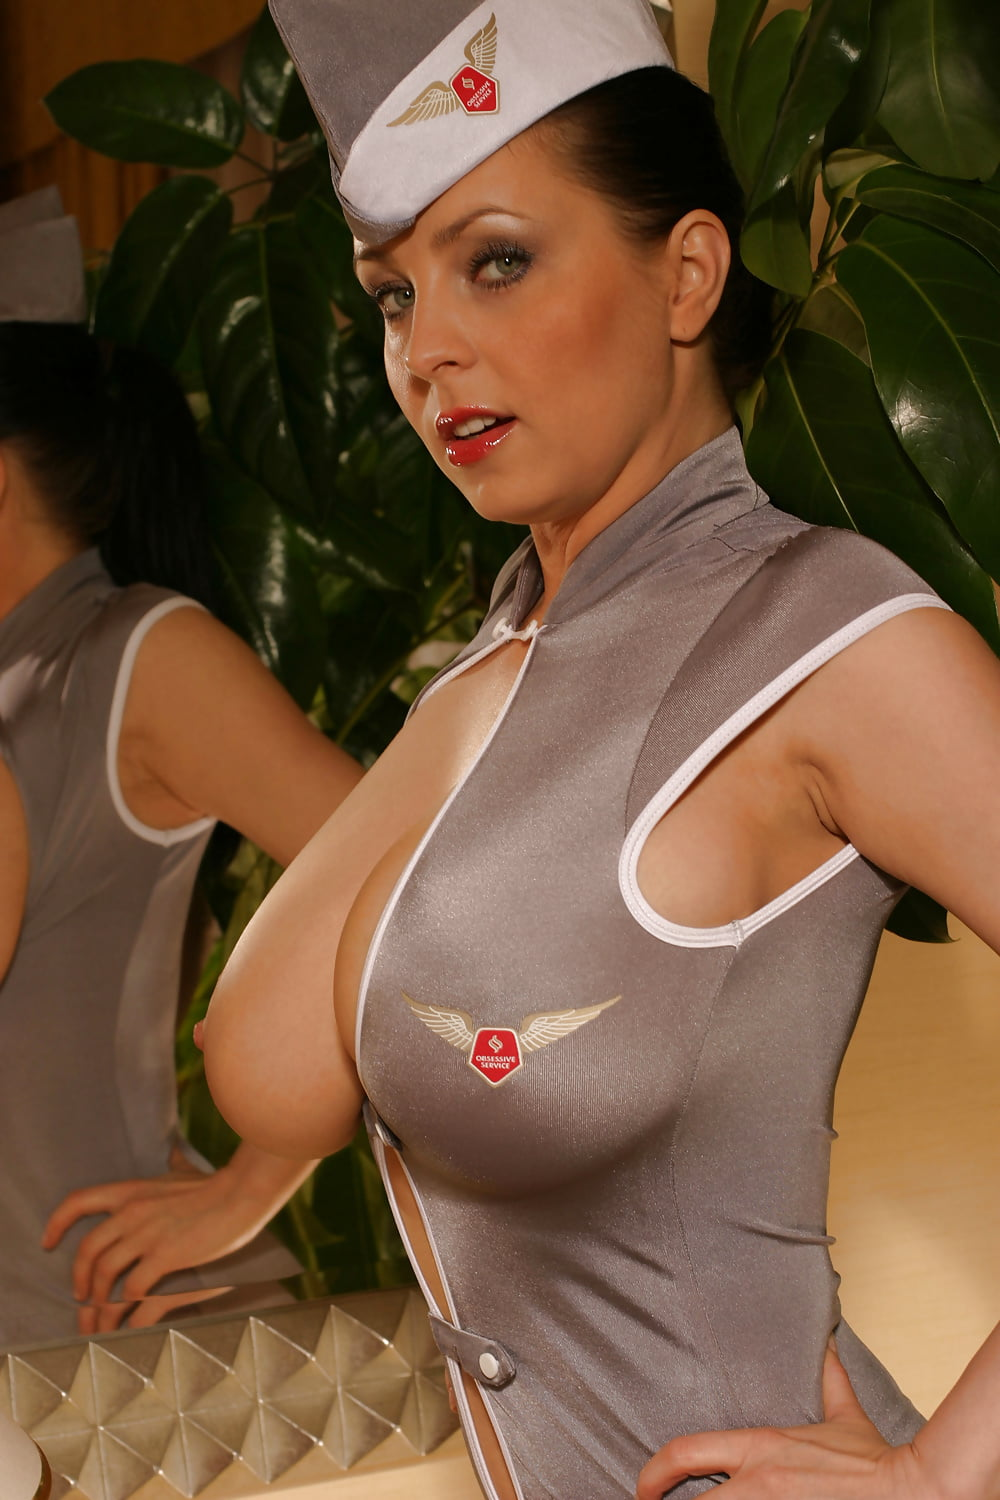 Big Tits In Uniform Pictures